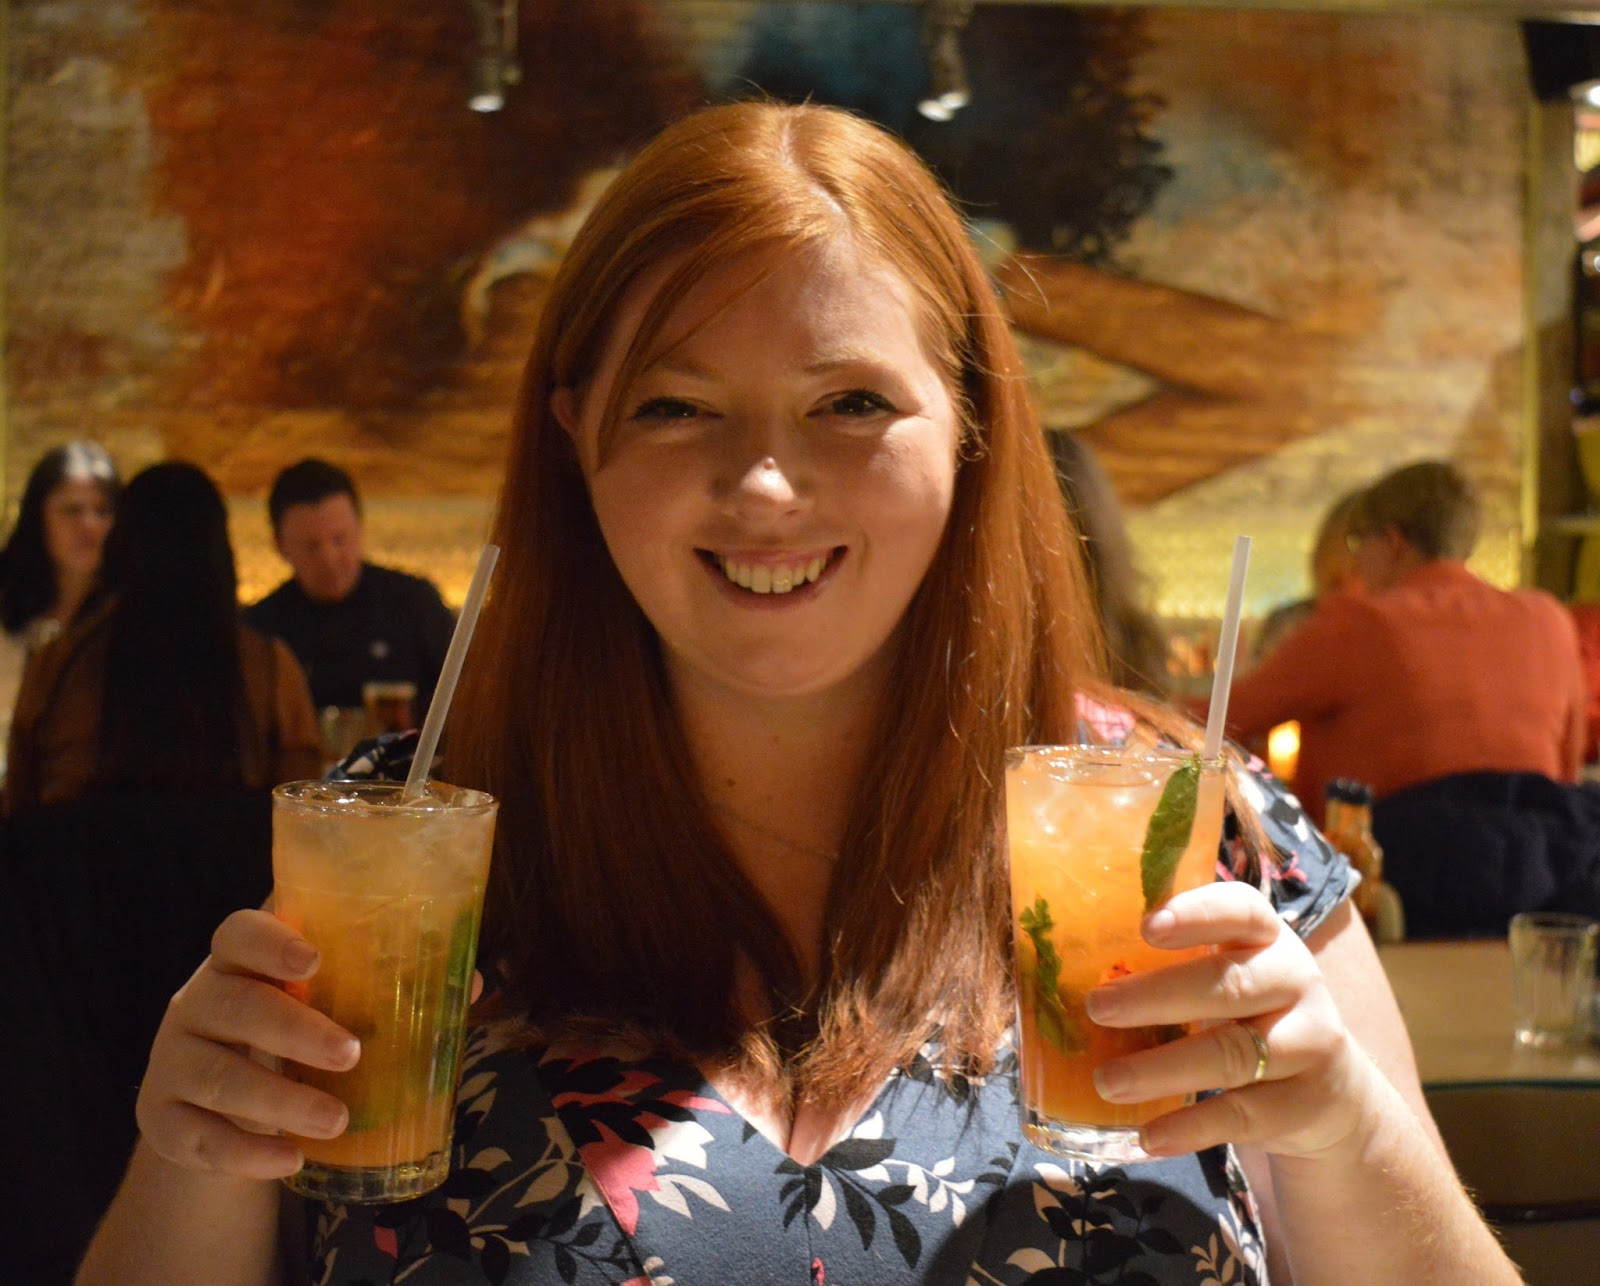 Buy one get one free cocktails during happy hour at Turtle Bay Newcastle